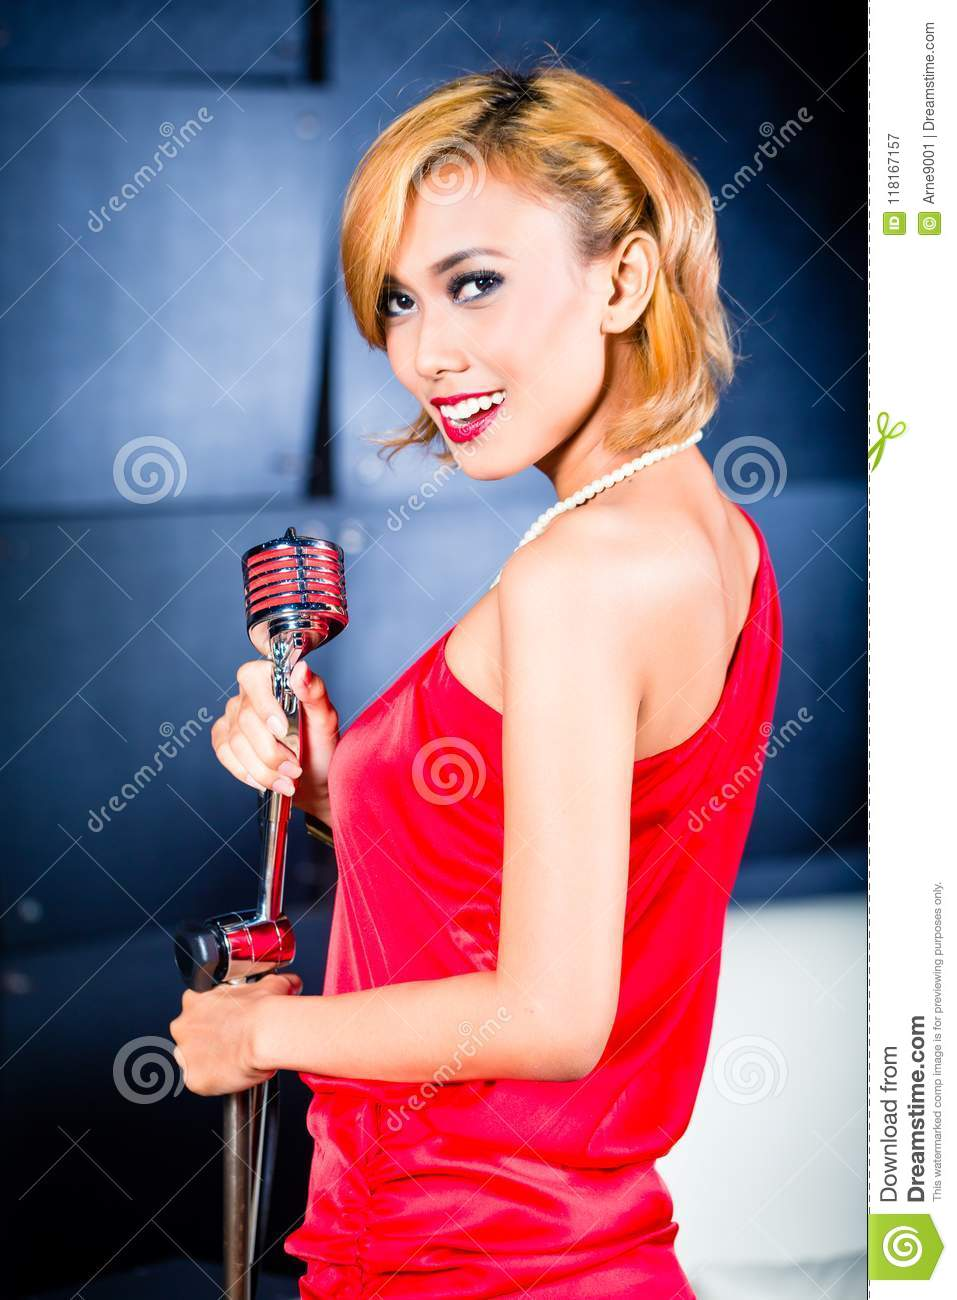 Asian Singer Producing Song In Recording Studio Stock Image - Image